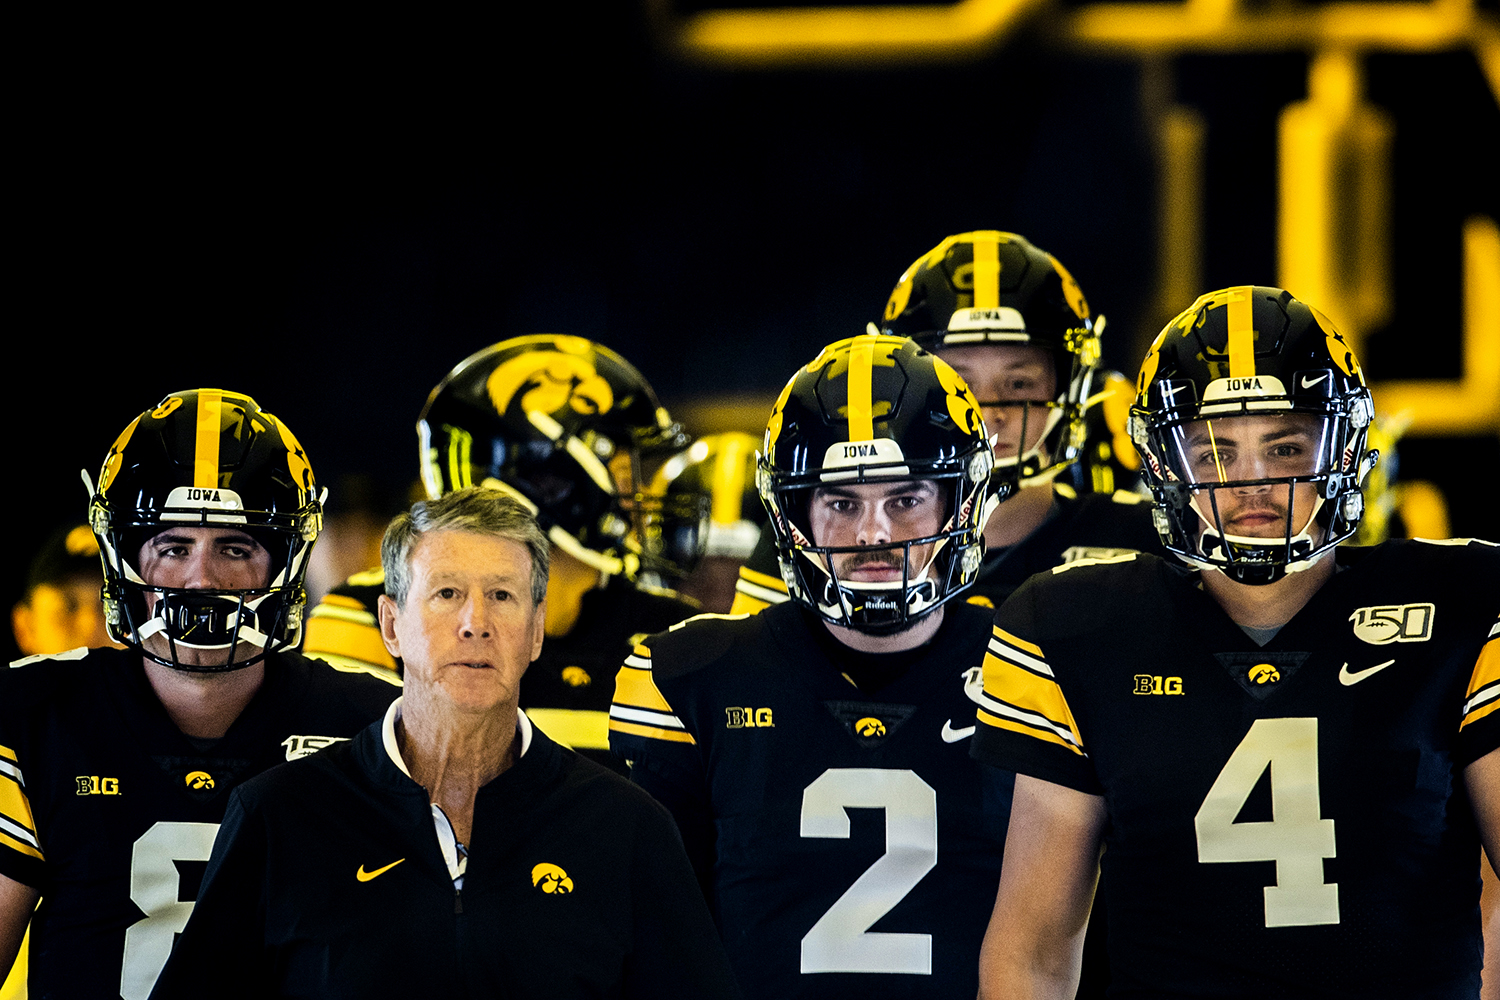 Iowa+players+prepare+to+walk+into+the+stadium+before+the+football+game+against+Miami+%28Ohio%29+at+Kinnick+Stadium+on+Saturday%2C+August+31%2C+2019.+The+Hawkeyes+defeated+the+Redhawks+38-14.